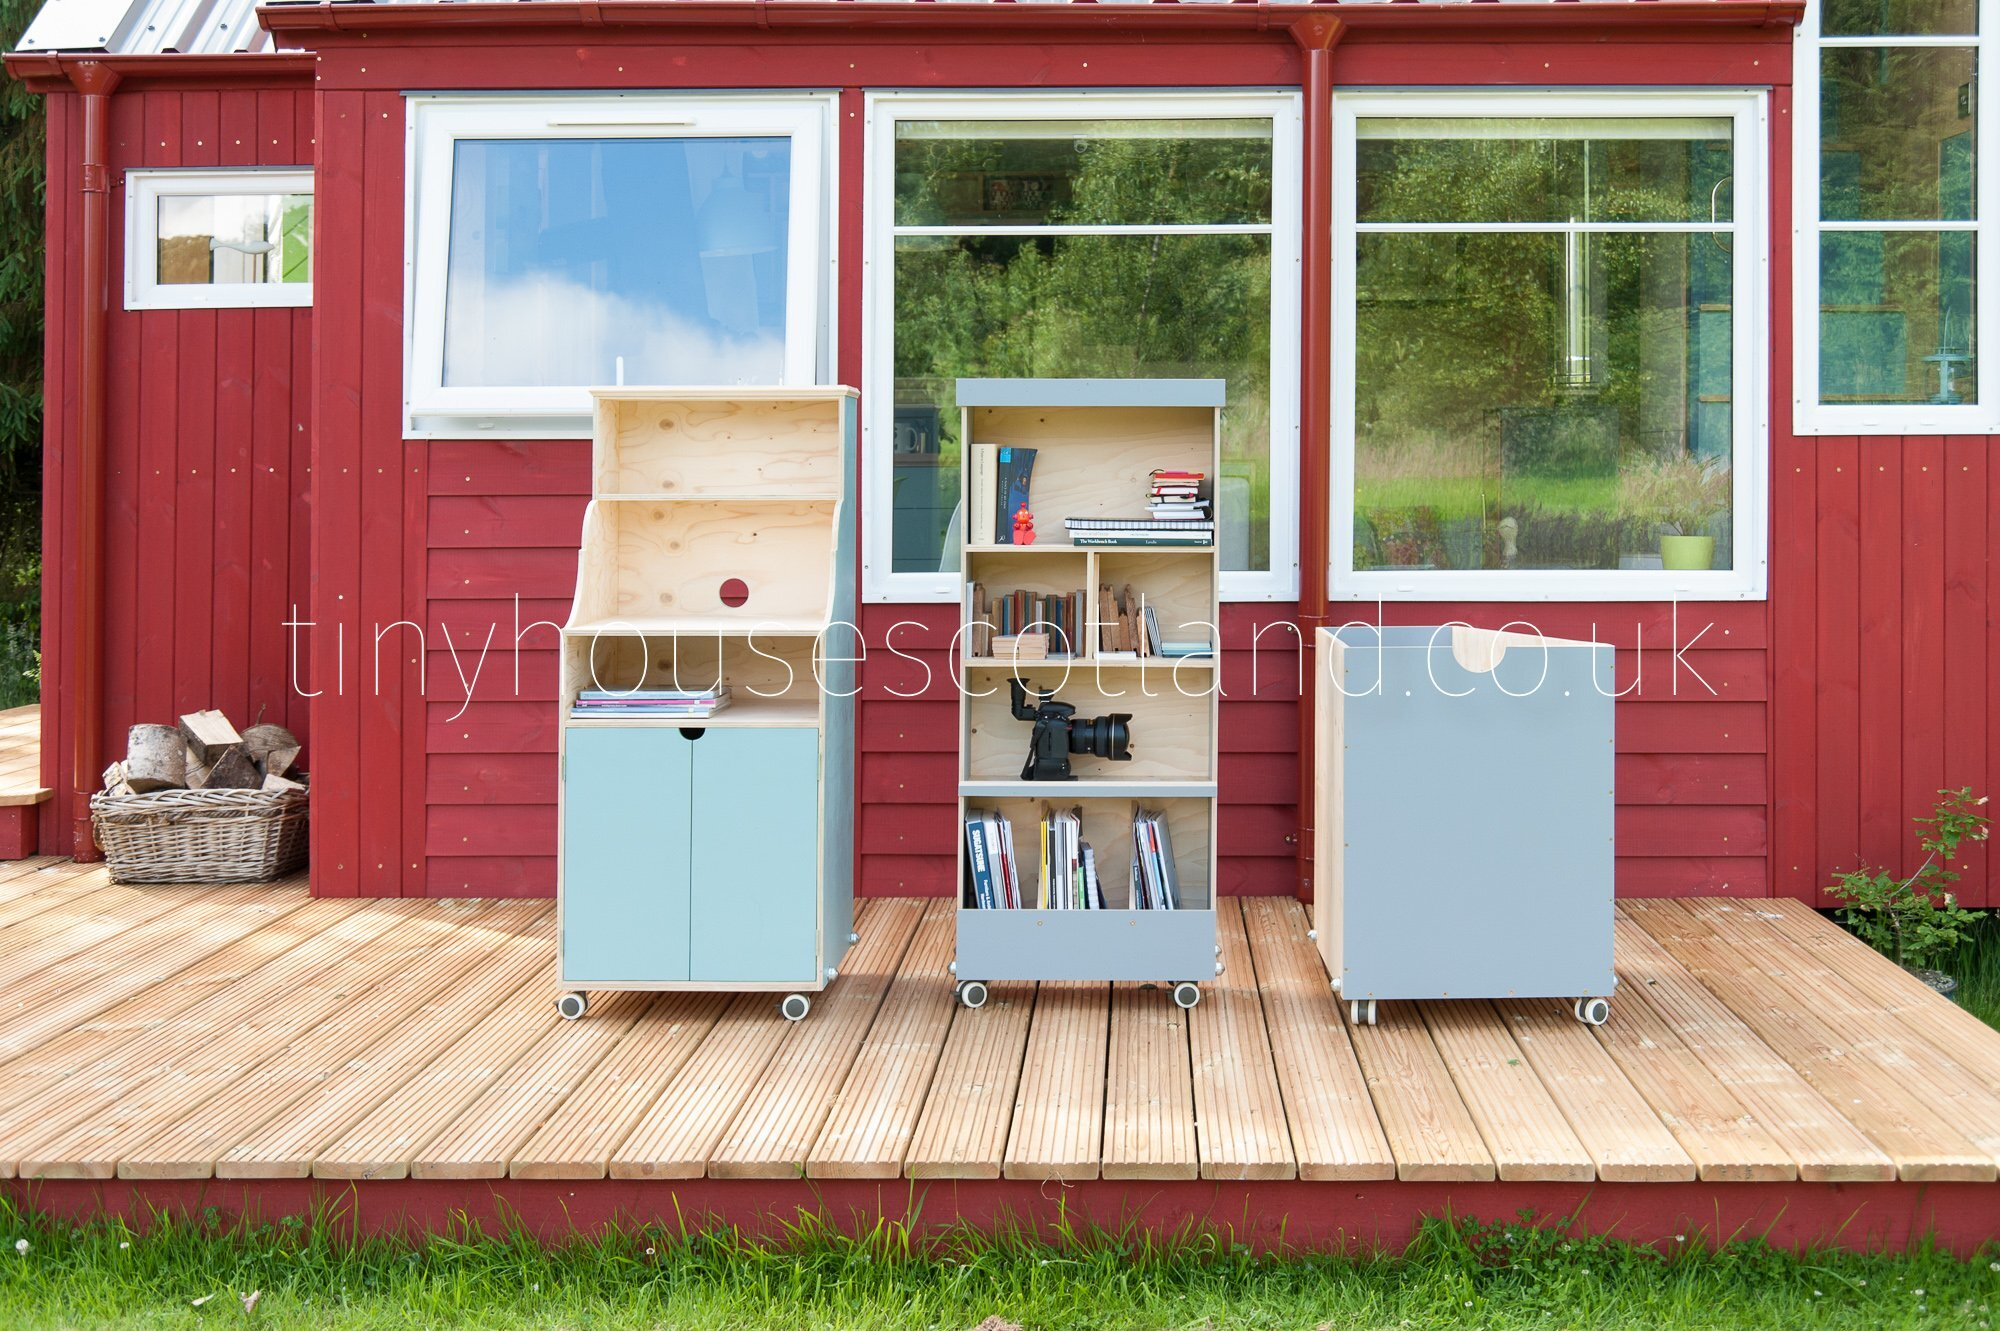 nest-house-tiny-house-scotland-scotland-storage-components-humble-homes